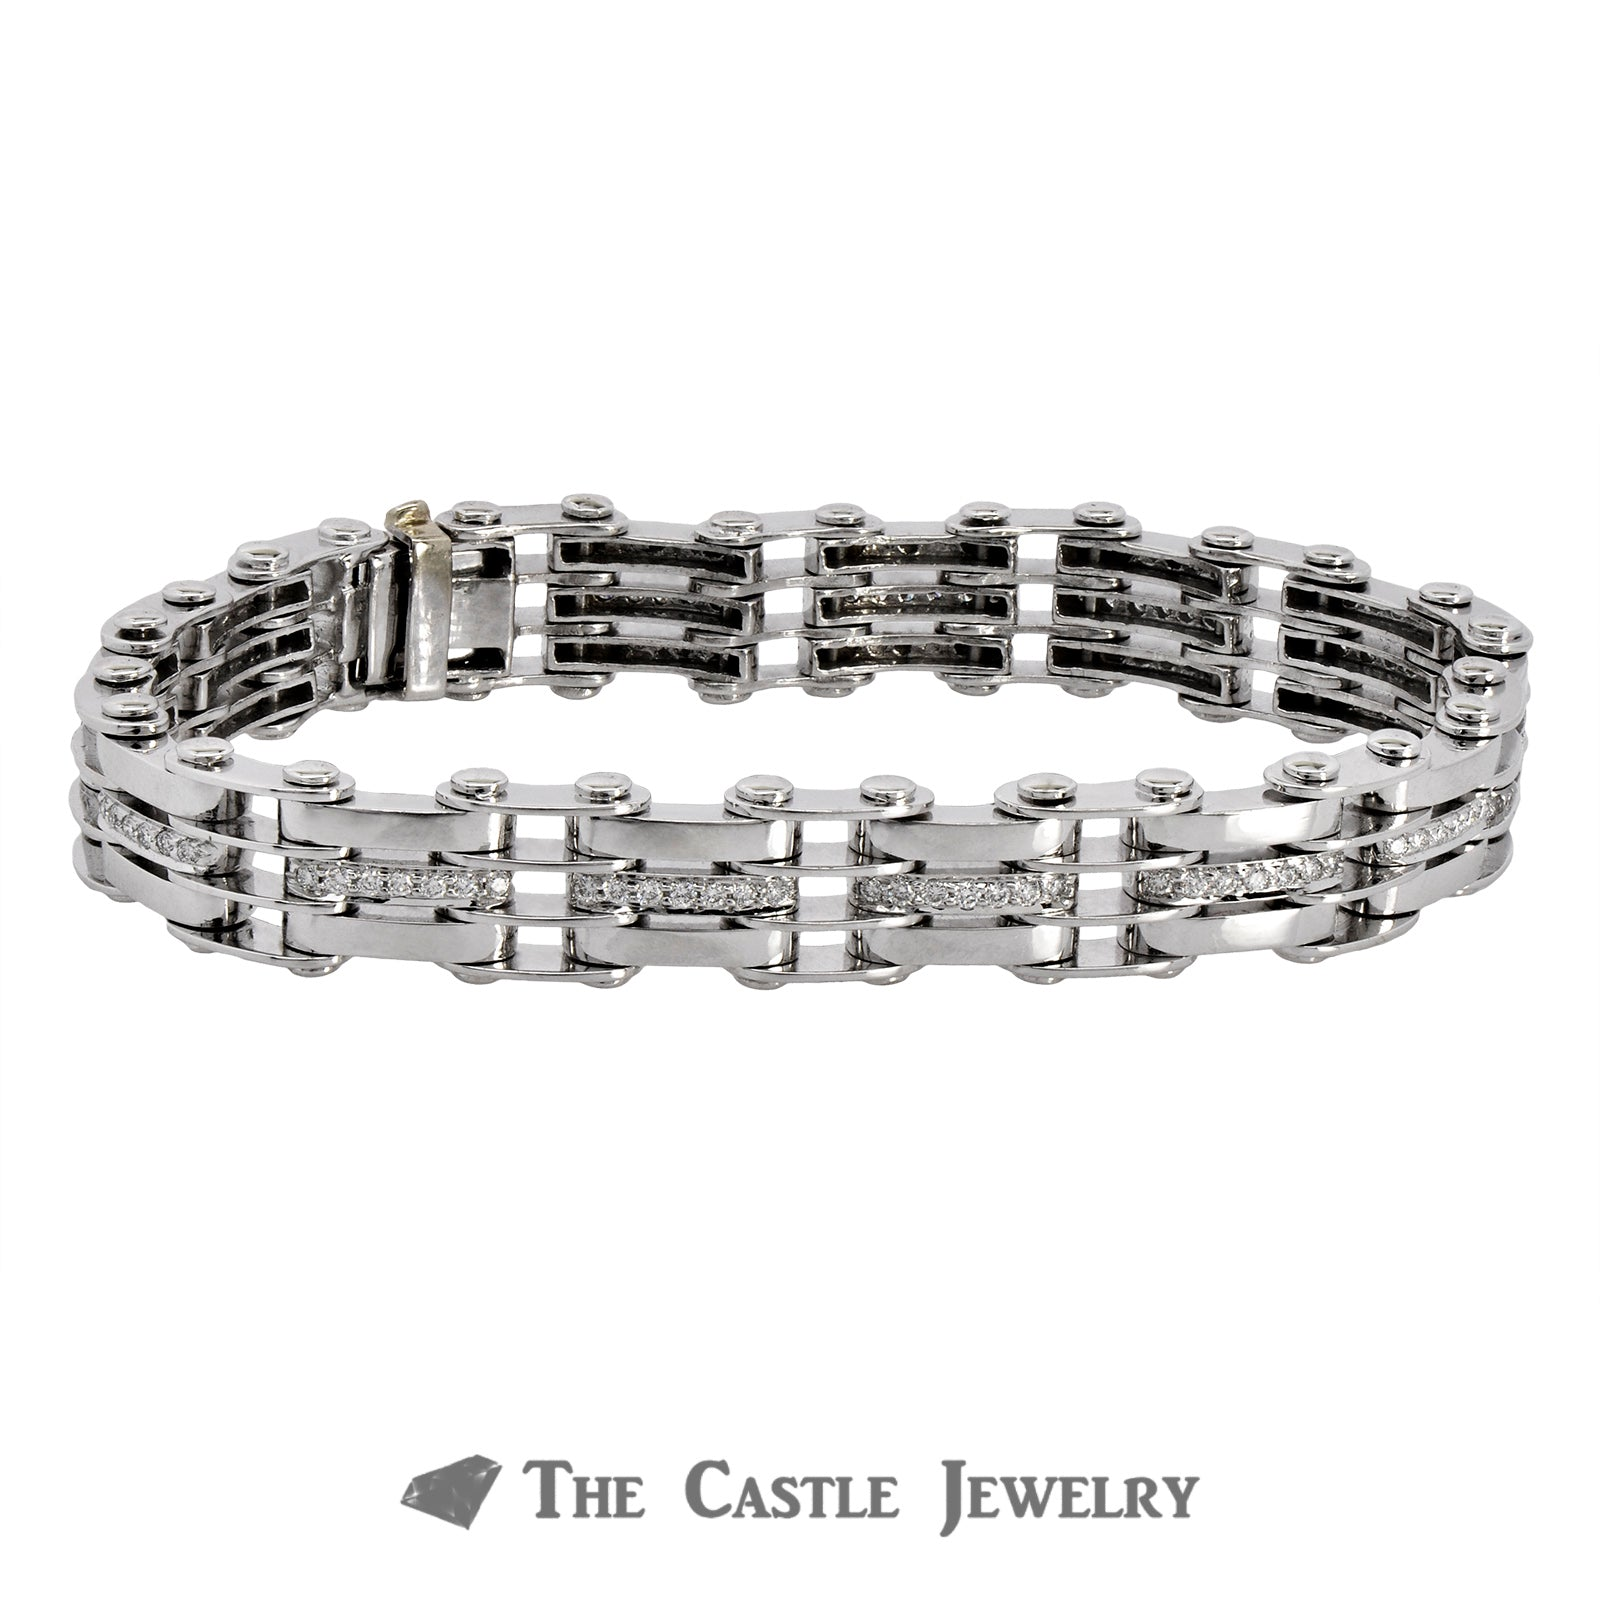 14K White Gold Men's Bracelet with Railroad Links and Diamonds